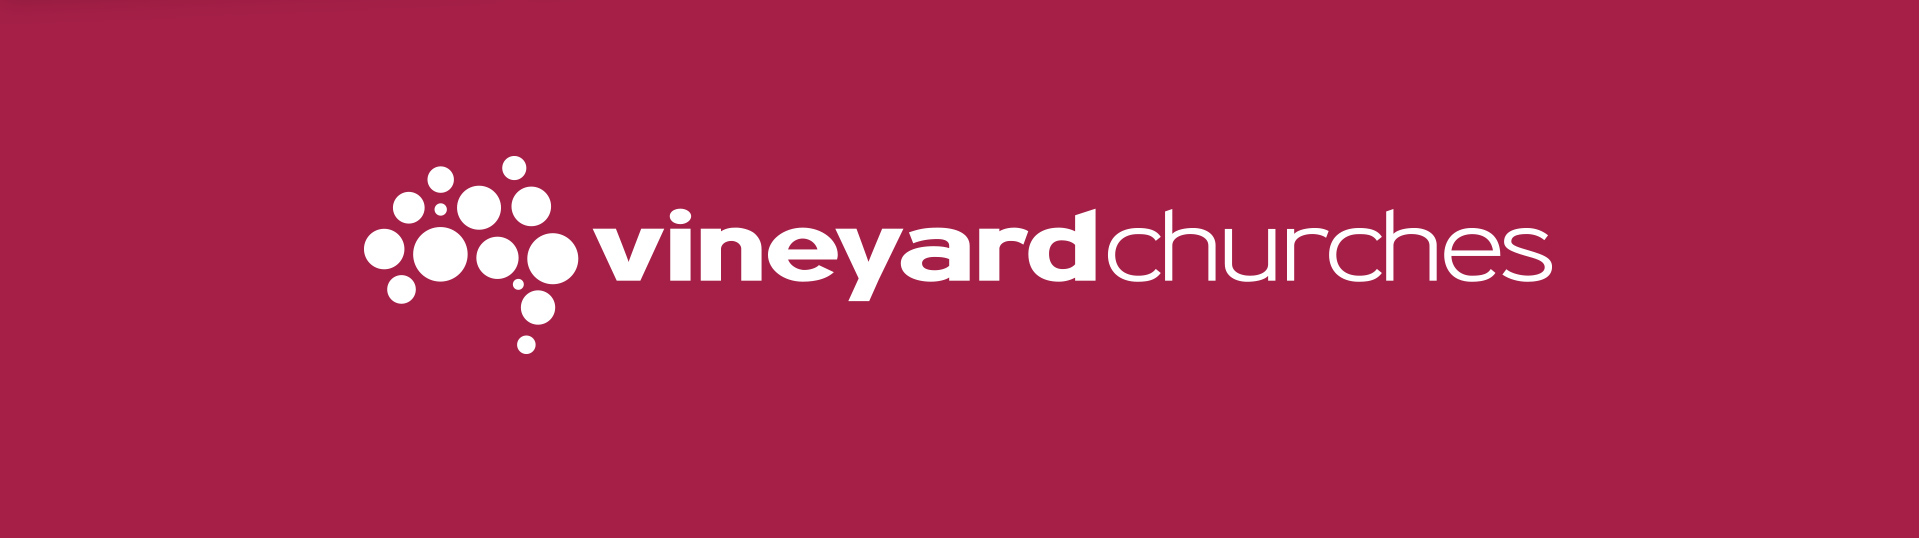 Vineyard Churches Australia Alternative Logo